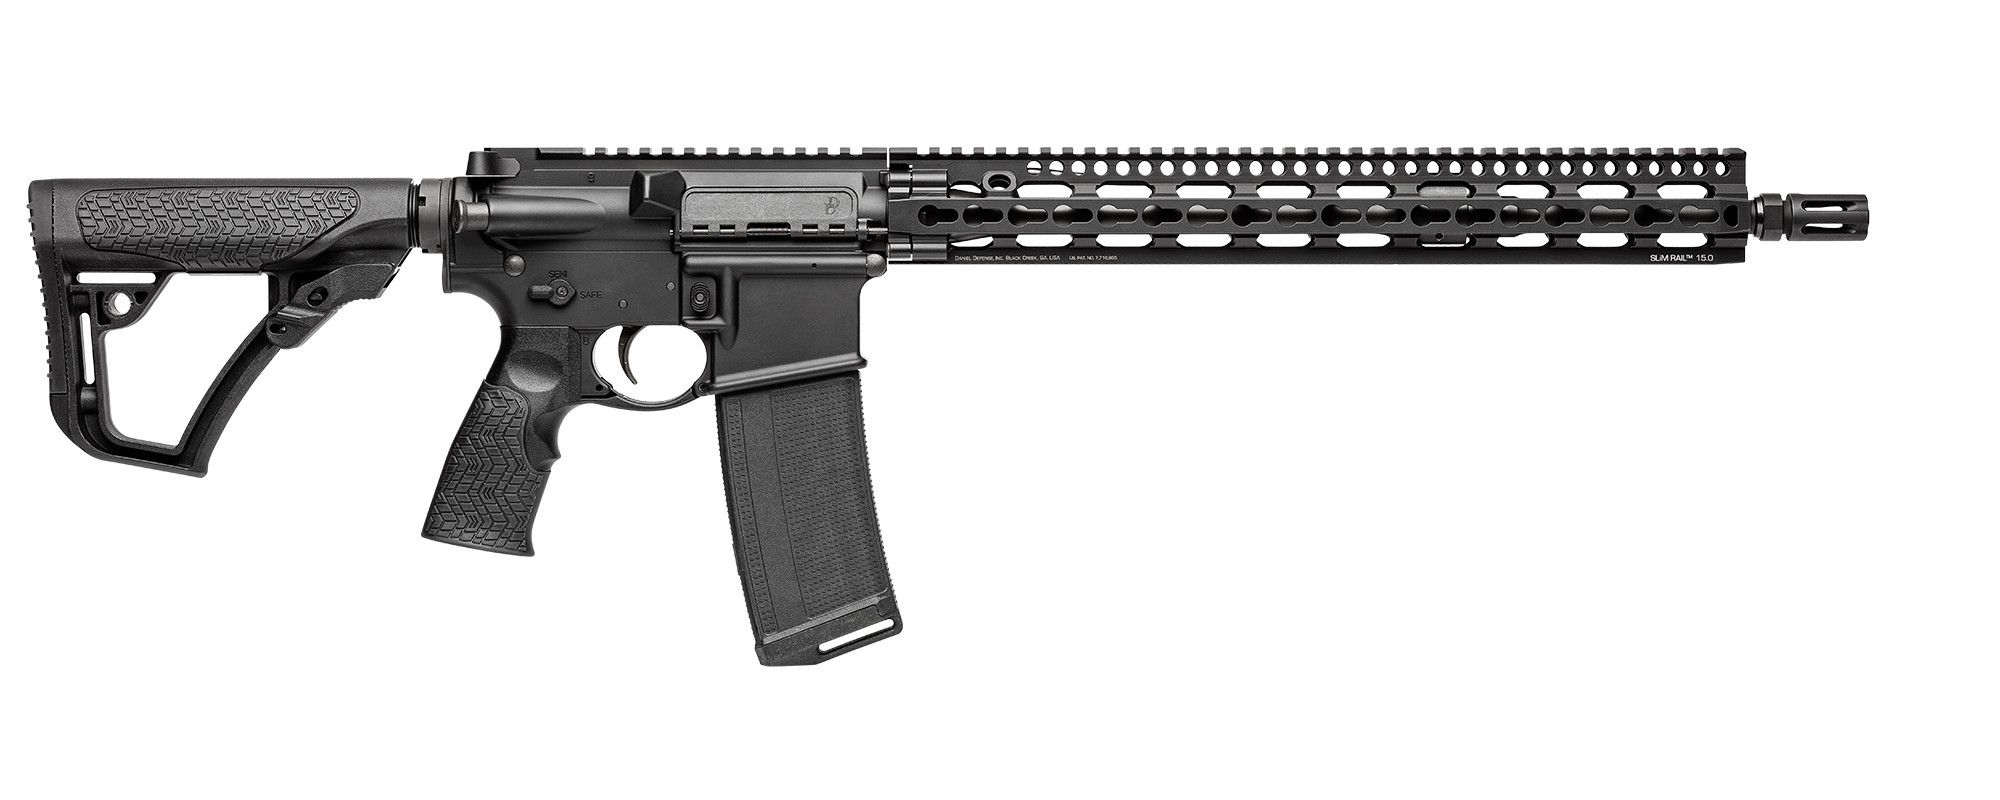 Daniel Defense DD M4 V11 Lightweight Carbine Rifle - 0215130032047